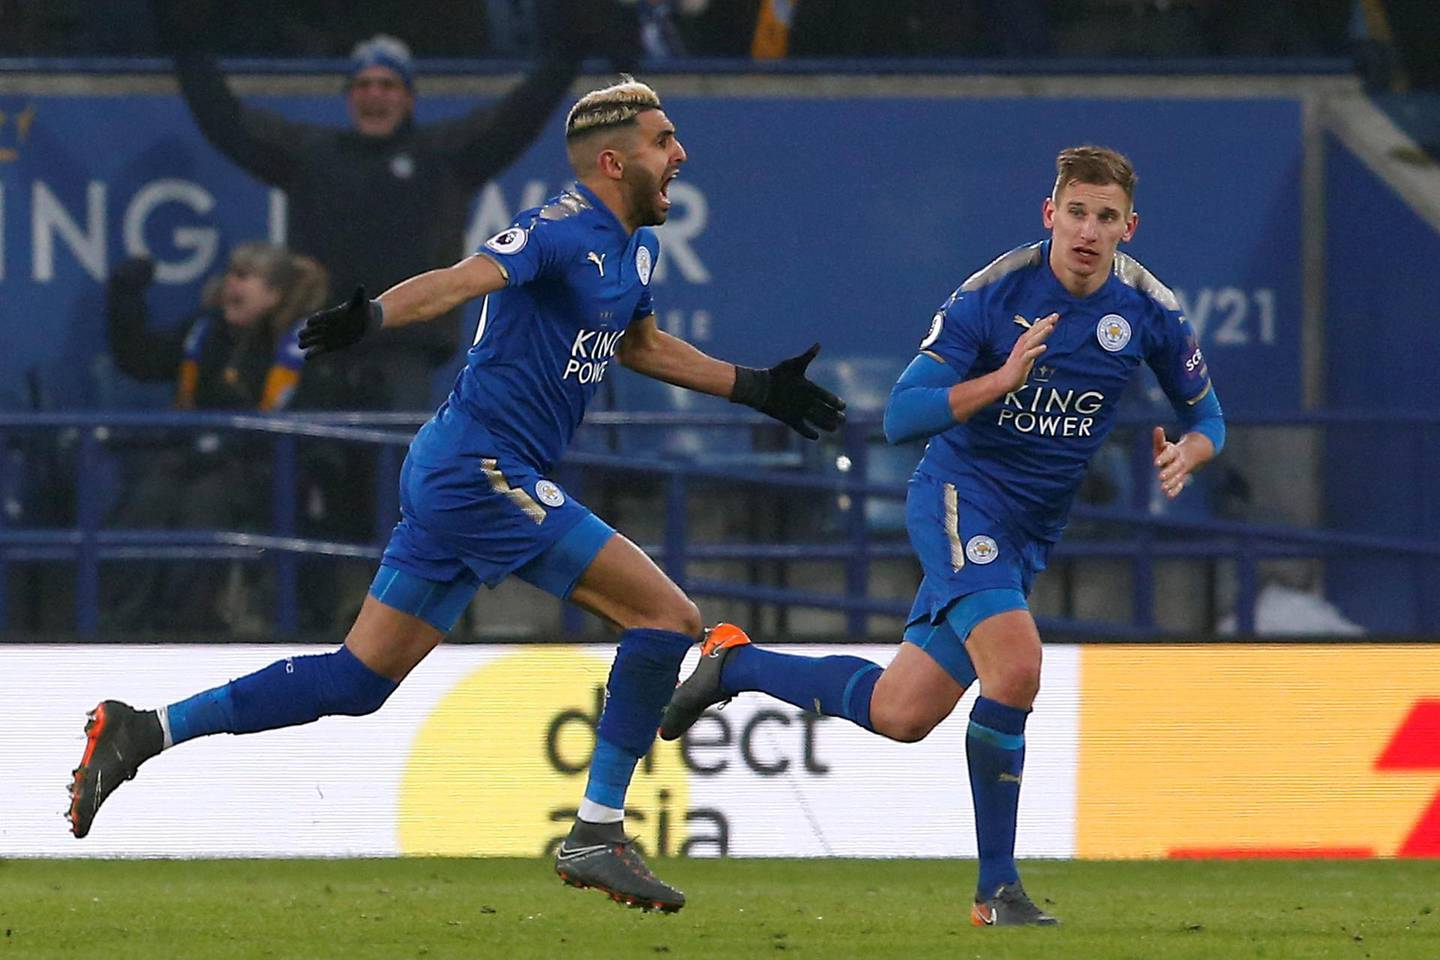 """Soccer Football - Premier League - Leicester City vs AFC Bournemouth - King Power Stadium, Leicester, Britain - March 3, 2018   Leicester City's Riyad Mahrez celebrates scoring their first goal from a freekick    Action Images via Reuters/Craig Brough    EDITORIAL USE ONLY. No use with unauthorized audio, video, data, fixture lists, club/league logos or """"live"""" services. Online in-match use limited to 75 images, no video emulation. No use in betting, games or single club/league/player publications.  Please contact your account representative for further details."""